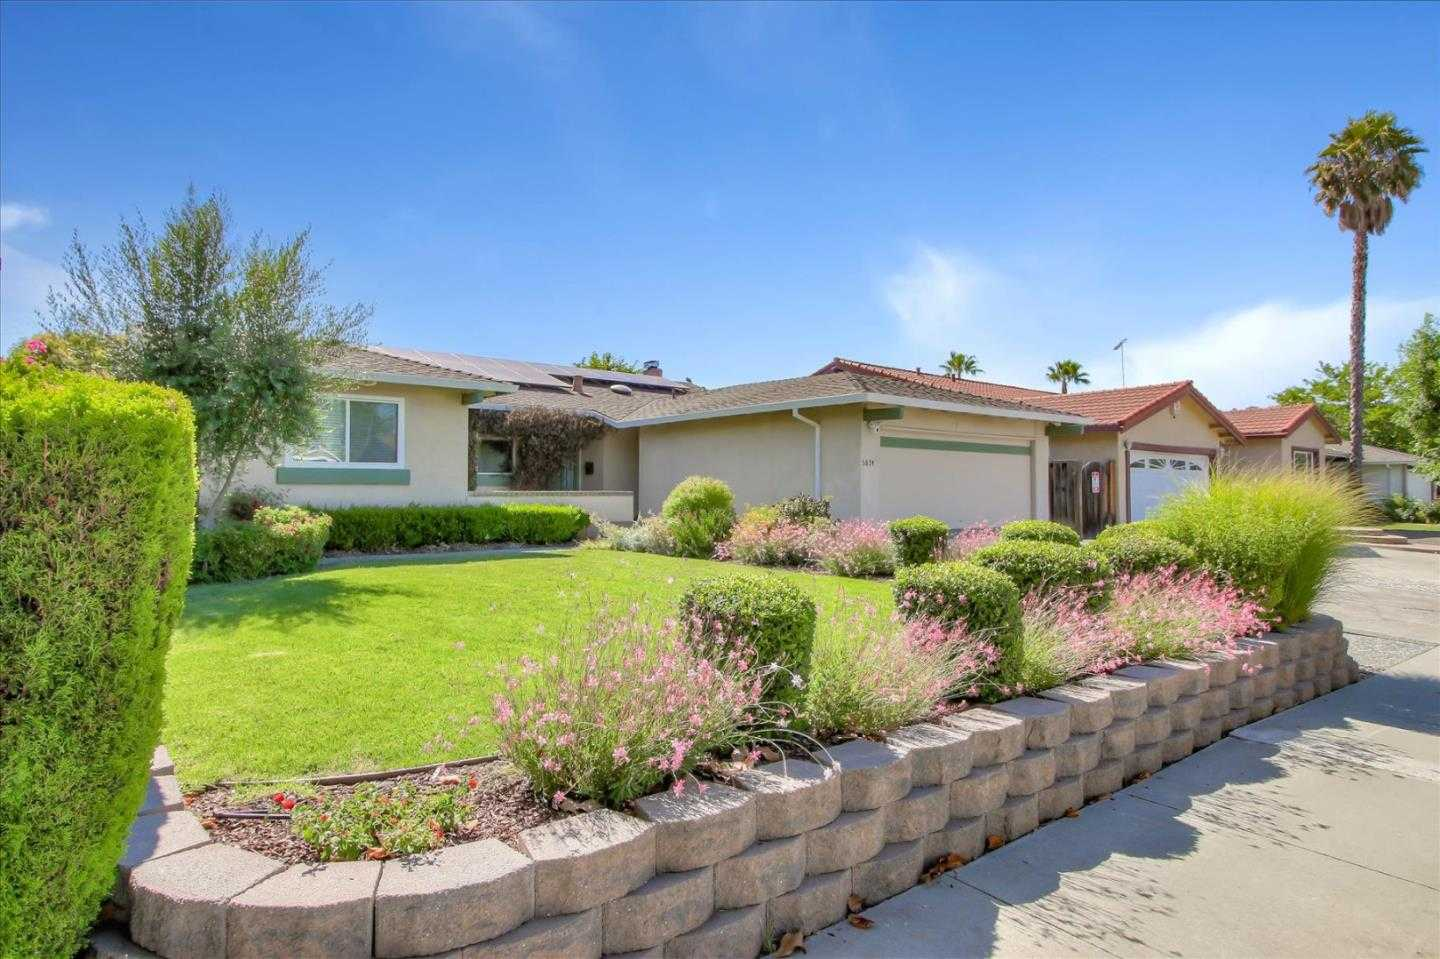 $1,025,000 - 4Br/2Ba -  for Sale in San Jose